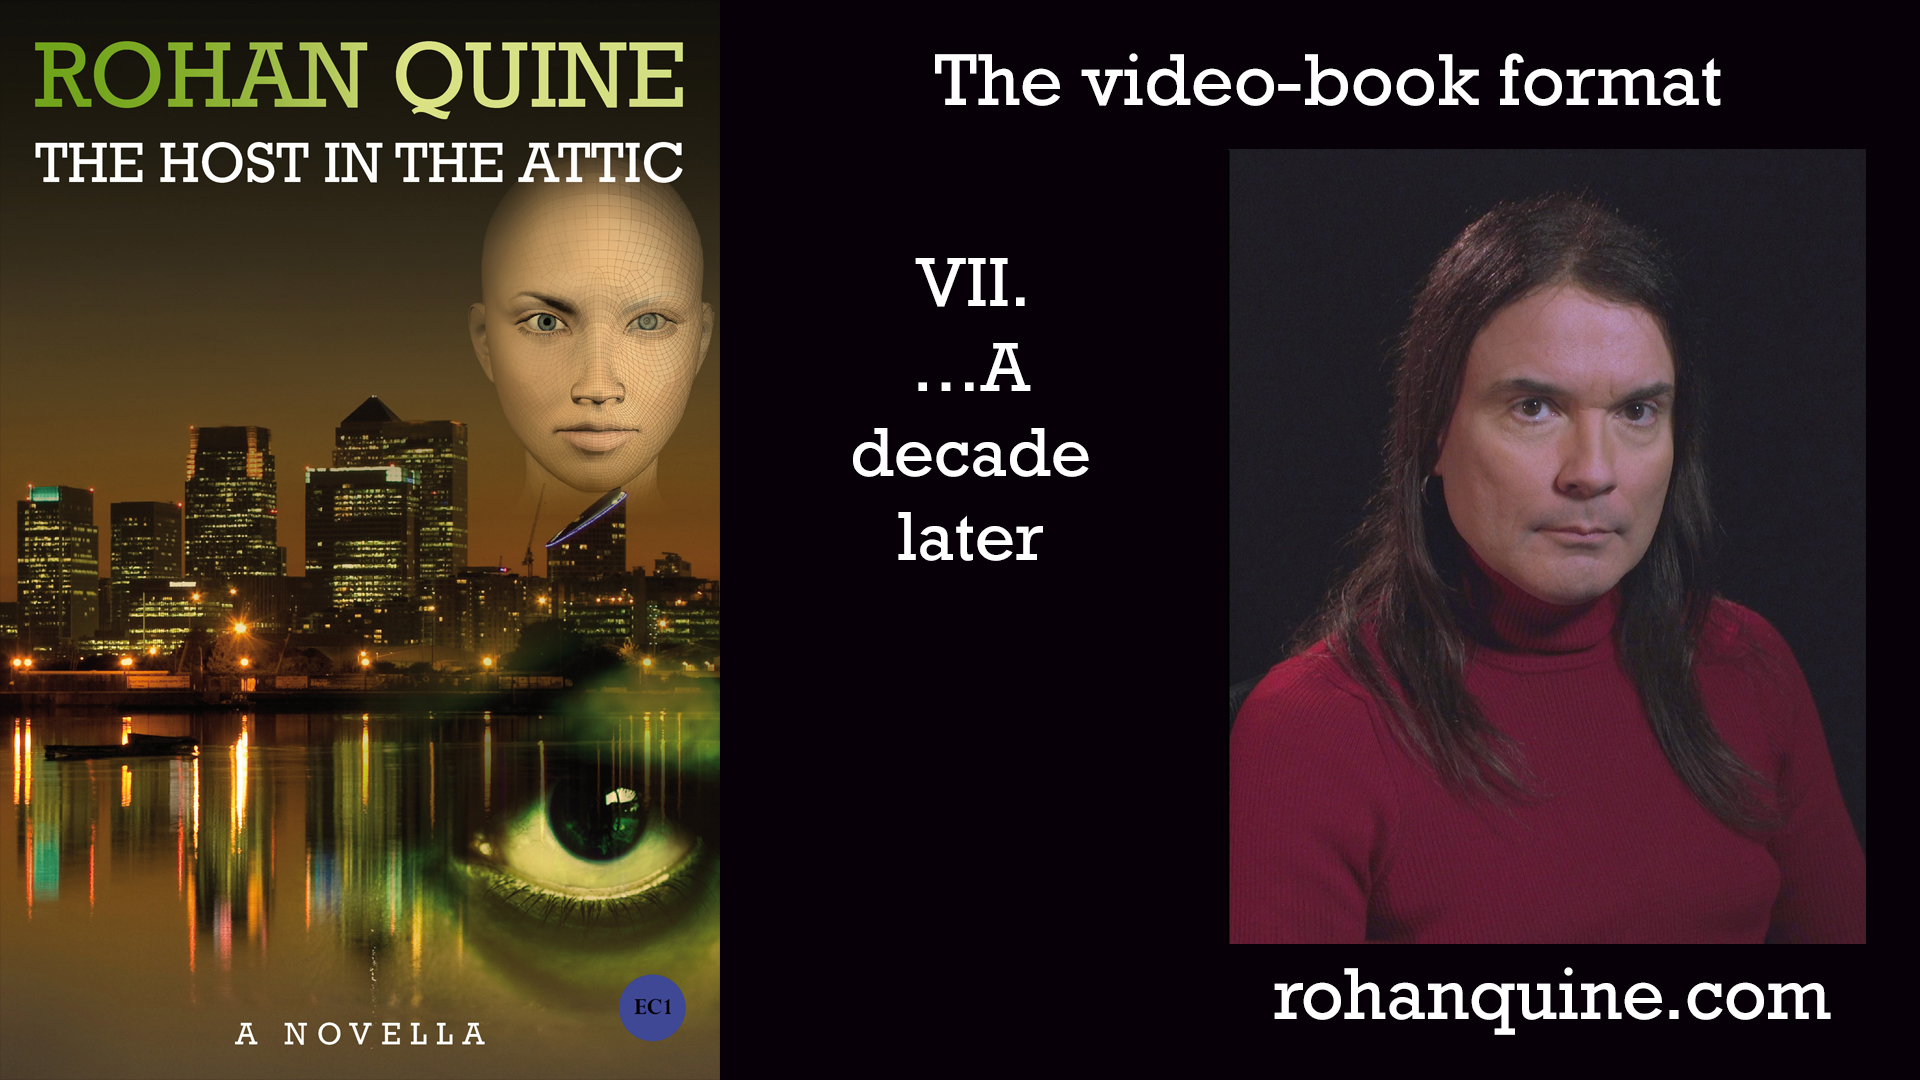 THE HOST IN THE ATTIC by Rohan Quine - video-book format - chapter VII